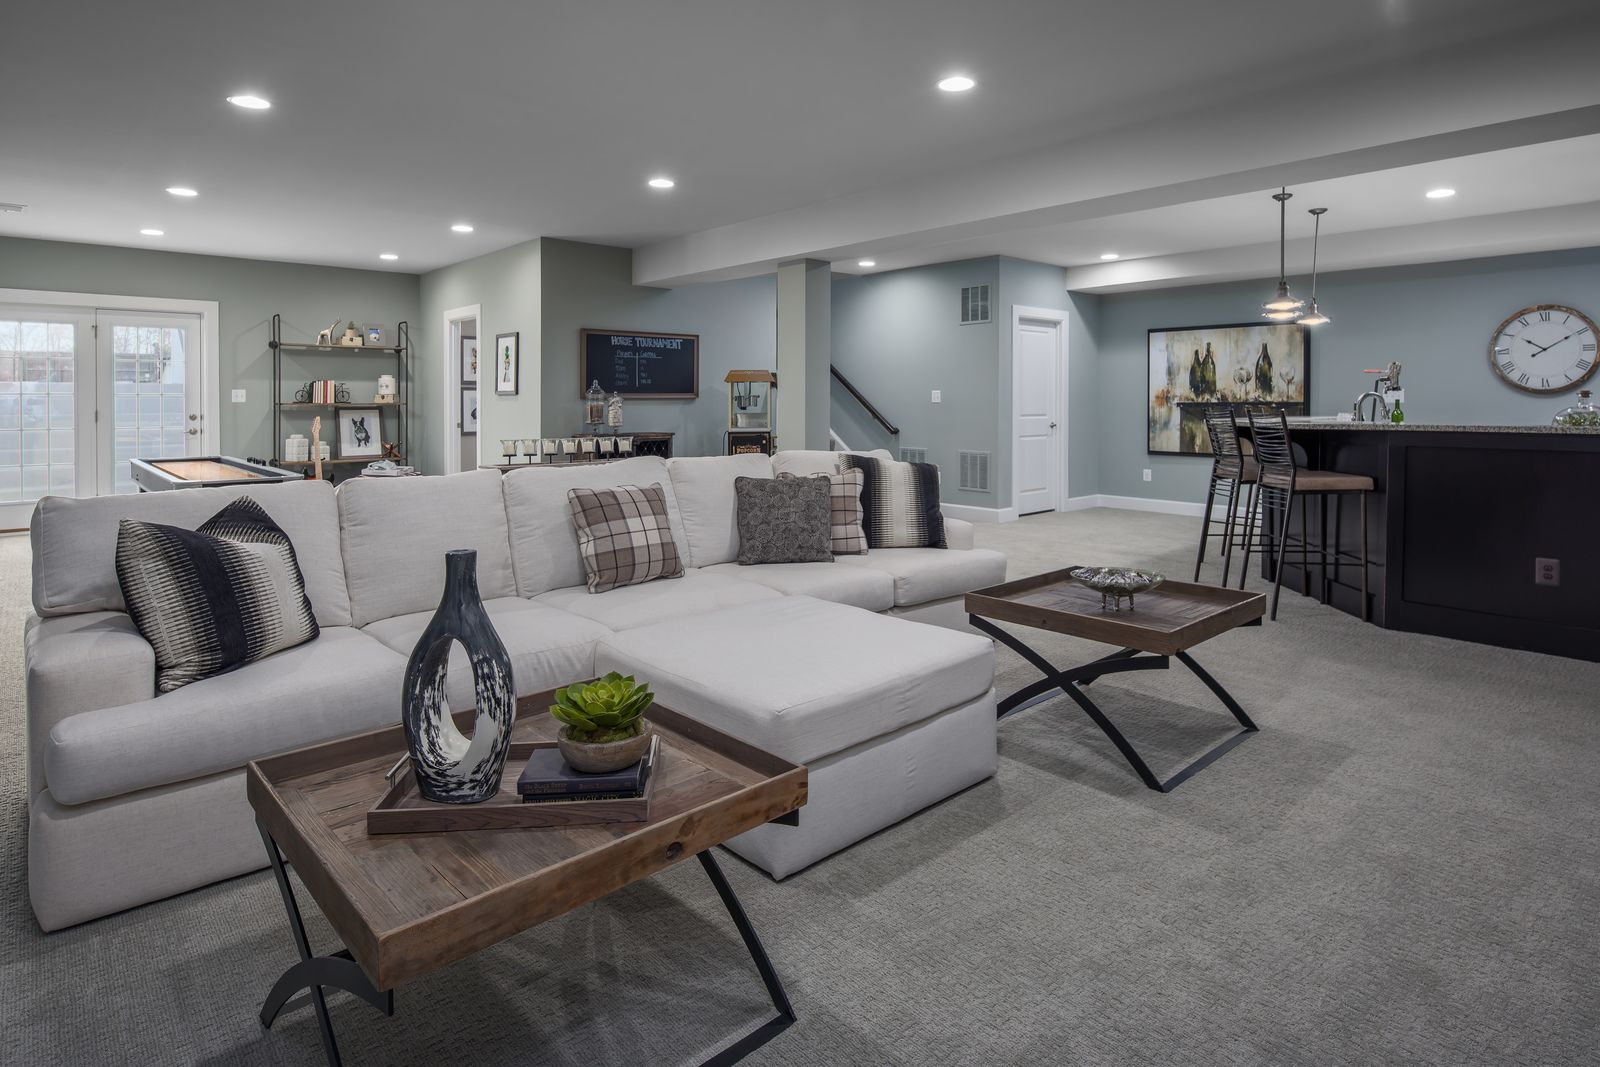 Living Area featured in the Radford By HeartlandHomes in Morgantown, WV